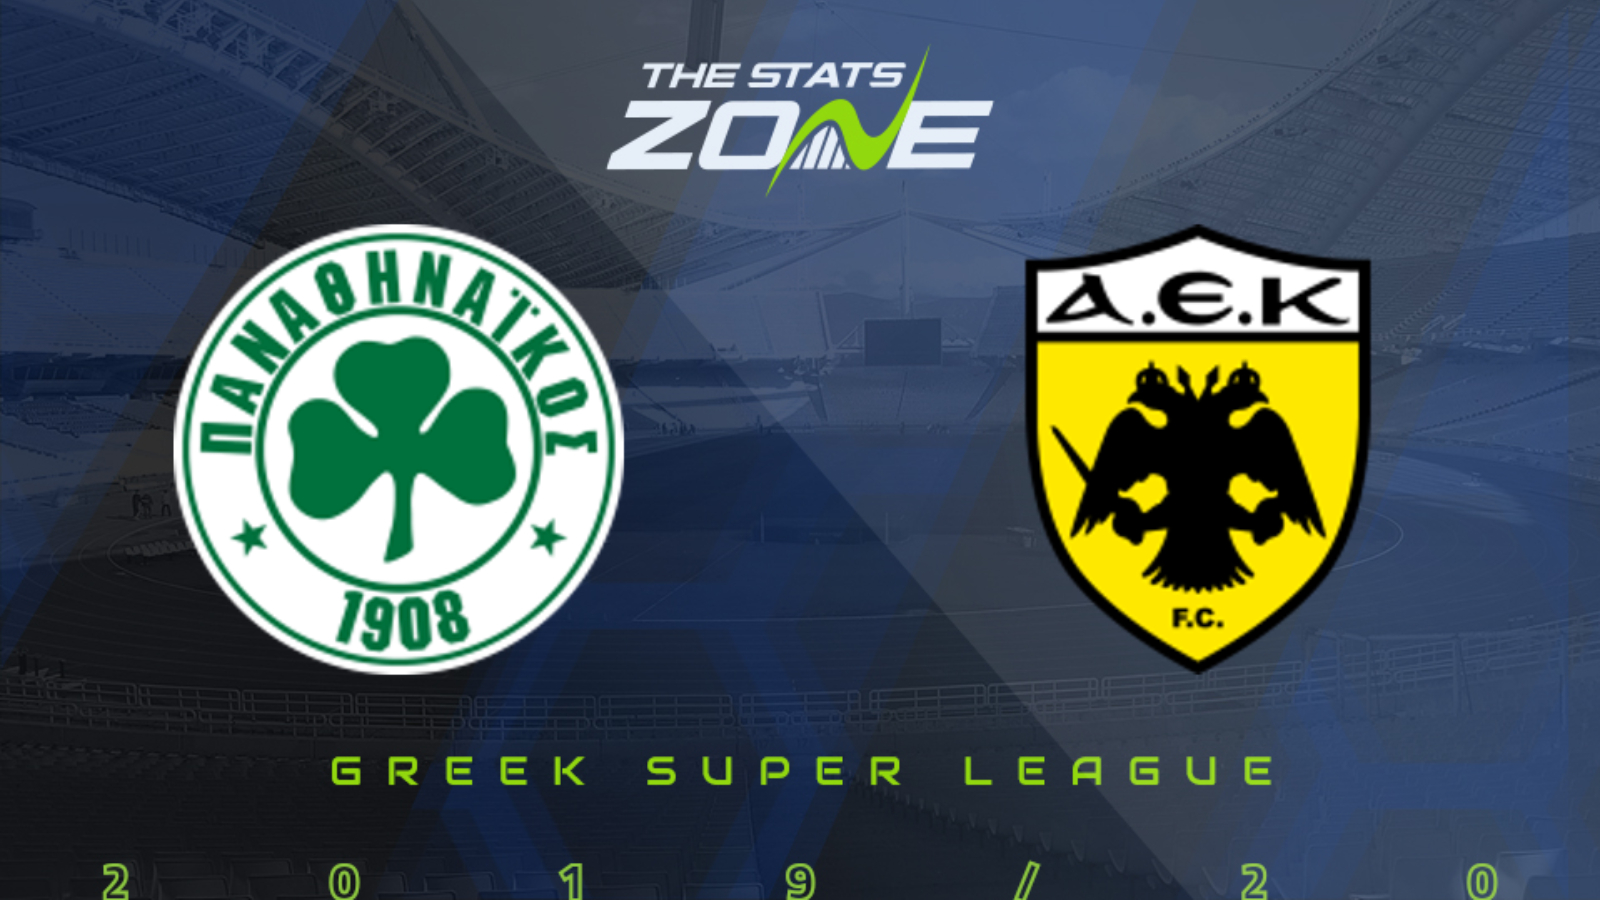 2019-20 Greek Super League - Panathinaikos vs AEK Athens ...